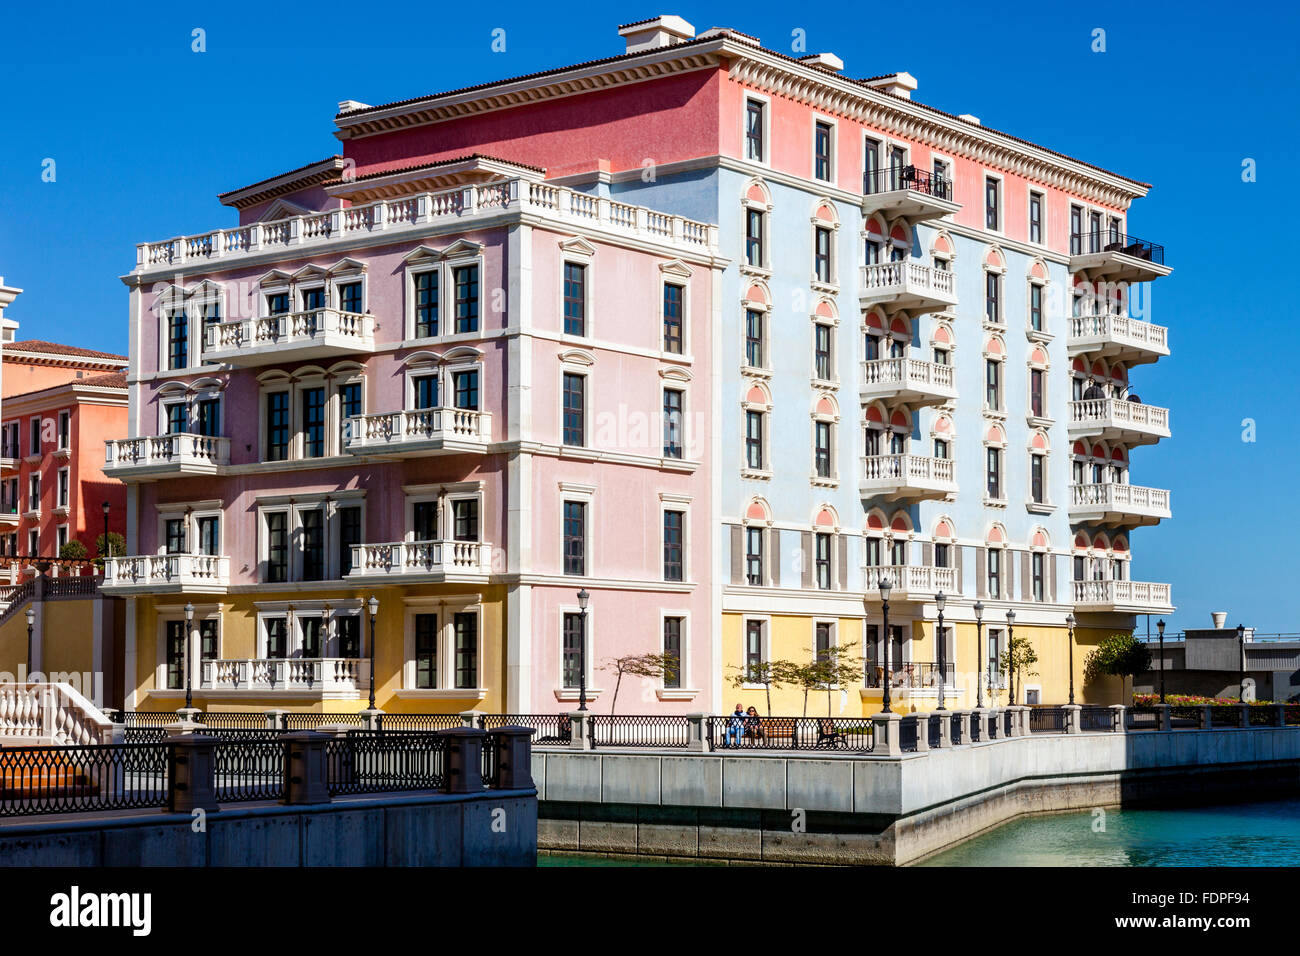 Colourful venetian style houses at qanat quartier the for Venetian style home